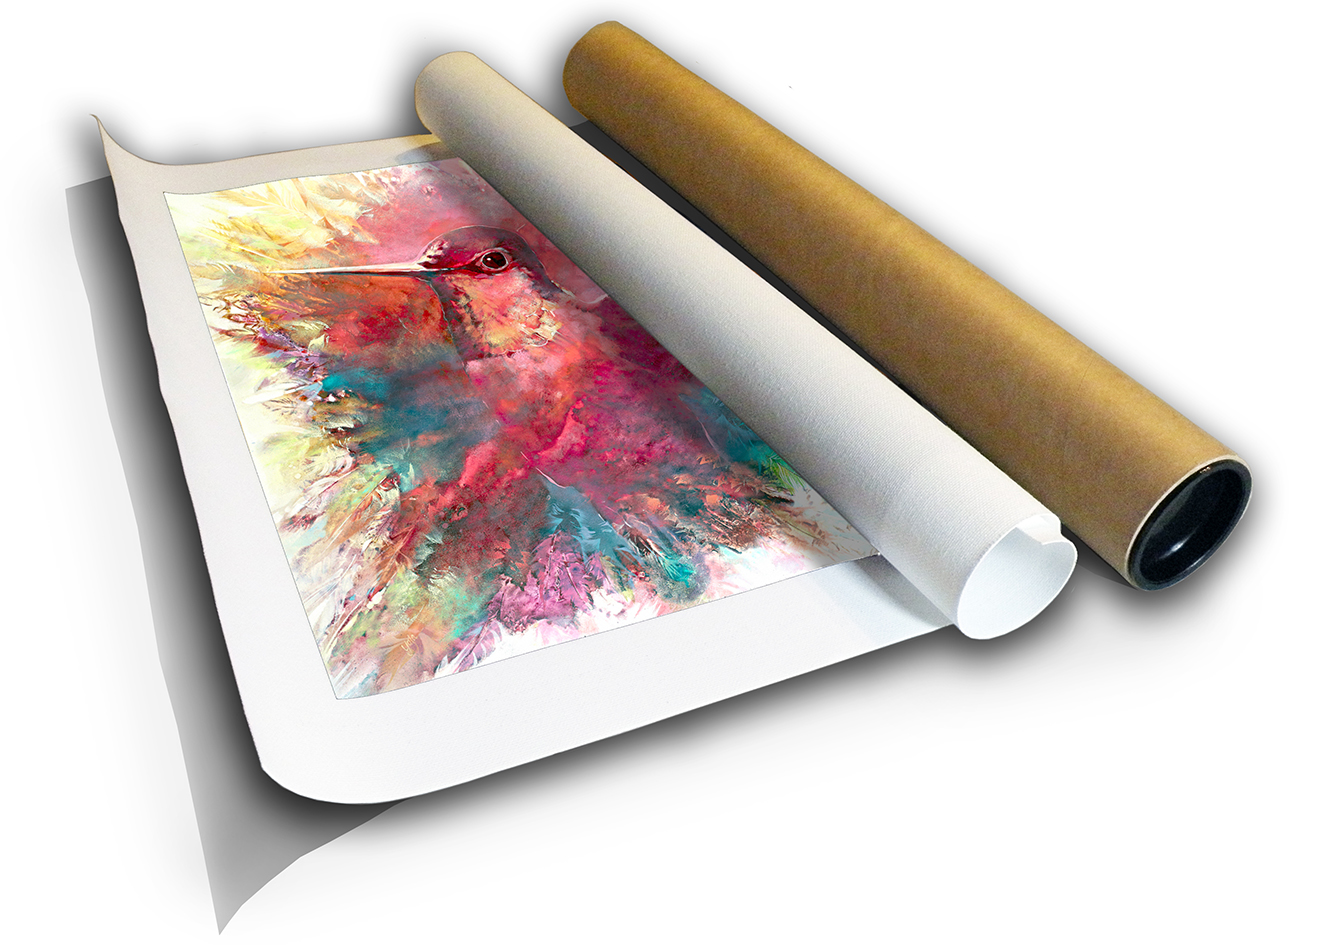 The Studio Art Gallery - Humming Bird by Yola Quinn - Canvas Print Rolled in a Tube